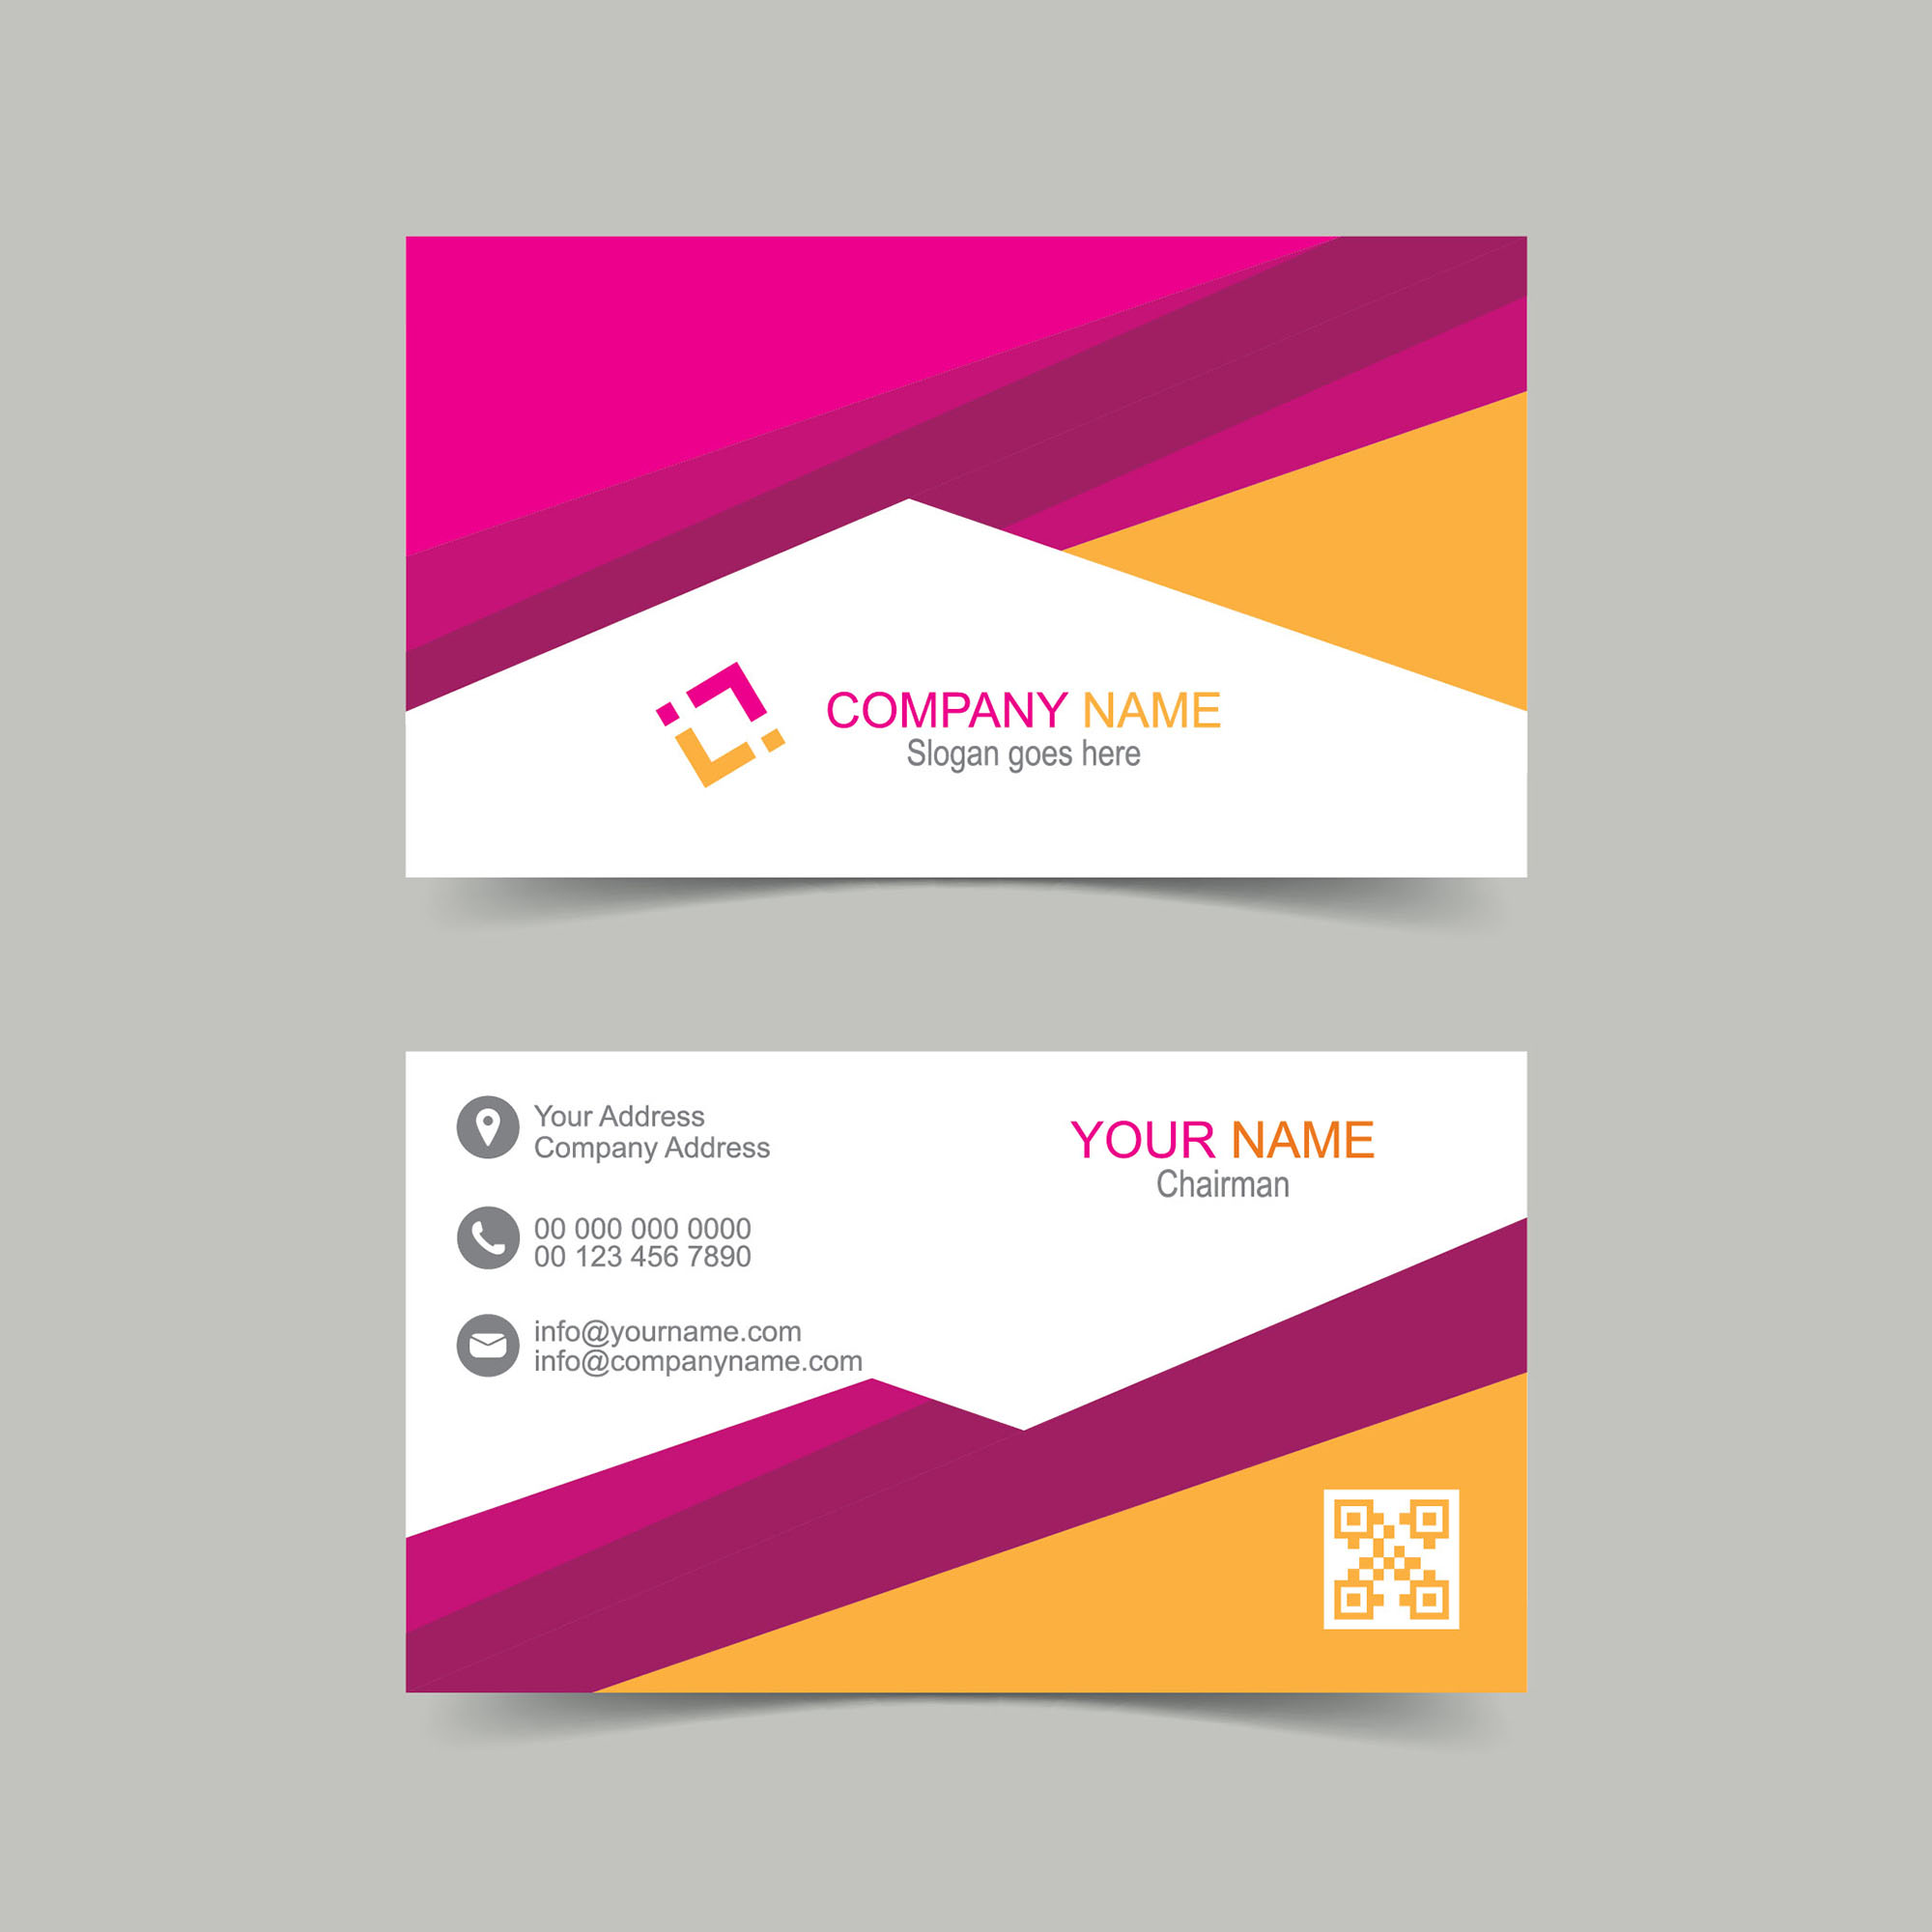 Vector business card design free download wisxi business card business cards business card design business card template design templates flashek Images